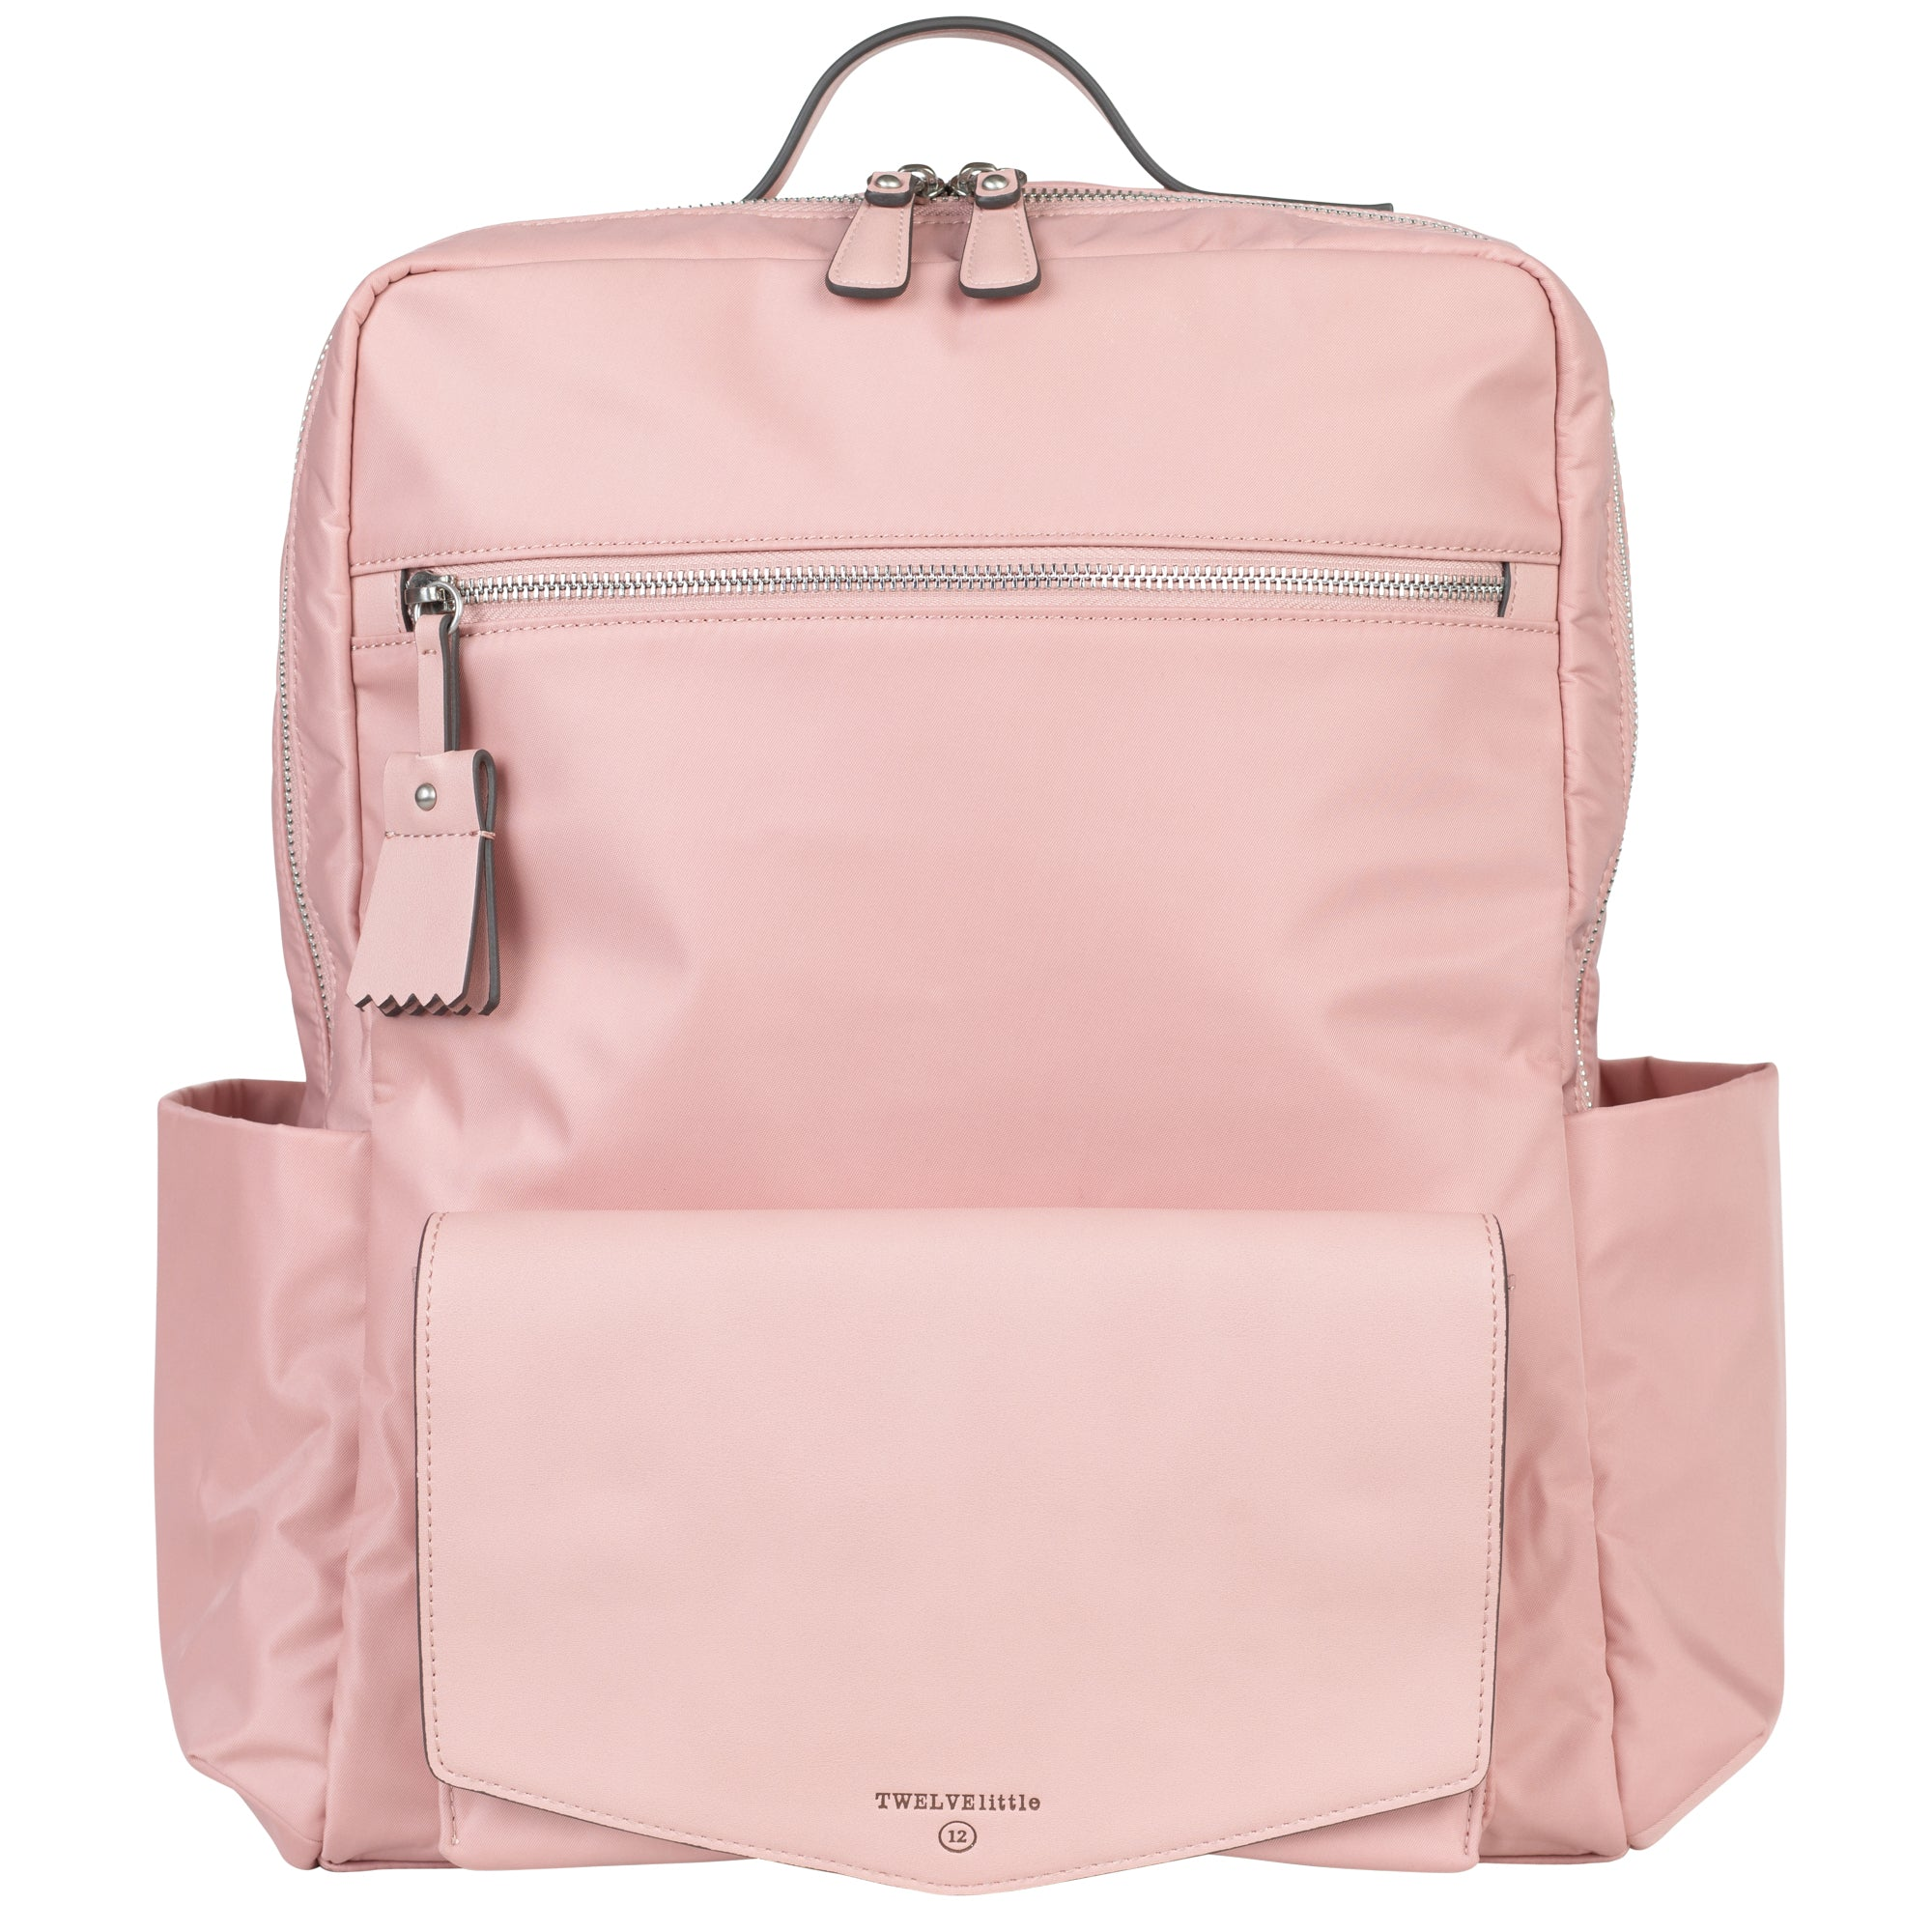 Peek-a-Boo Backpack - Pink - Project Nursery